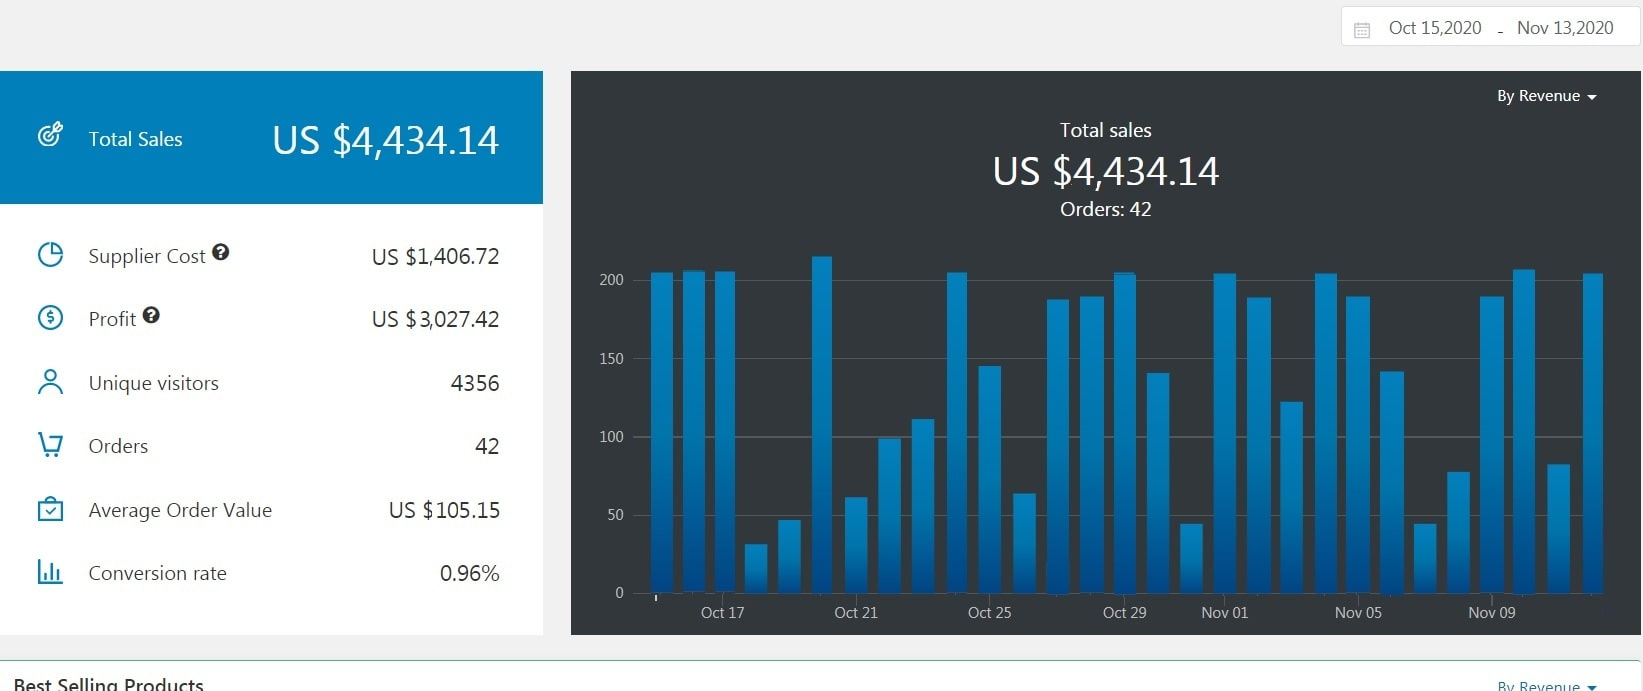 A screenshot showing the performance of a successful home-based business with $4,434.14 in total monthly sales